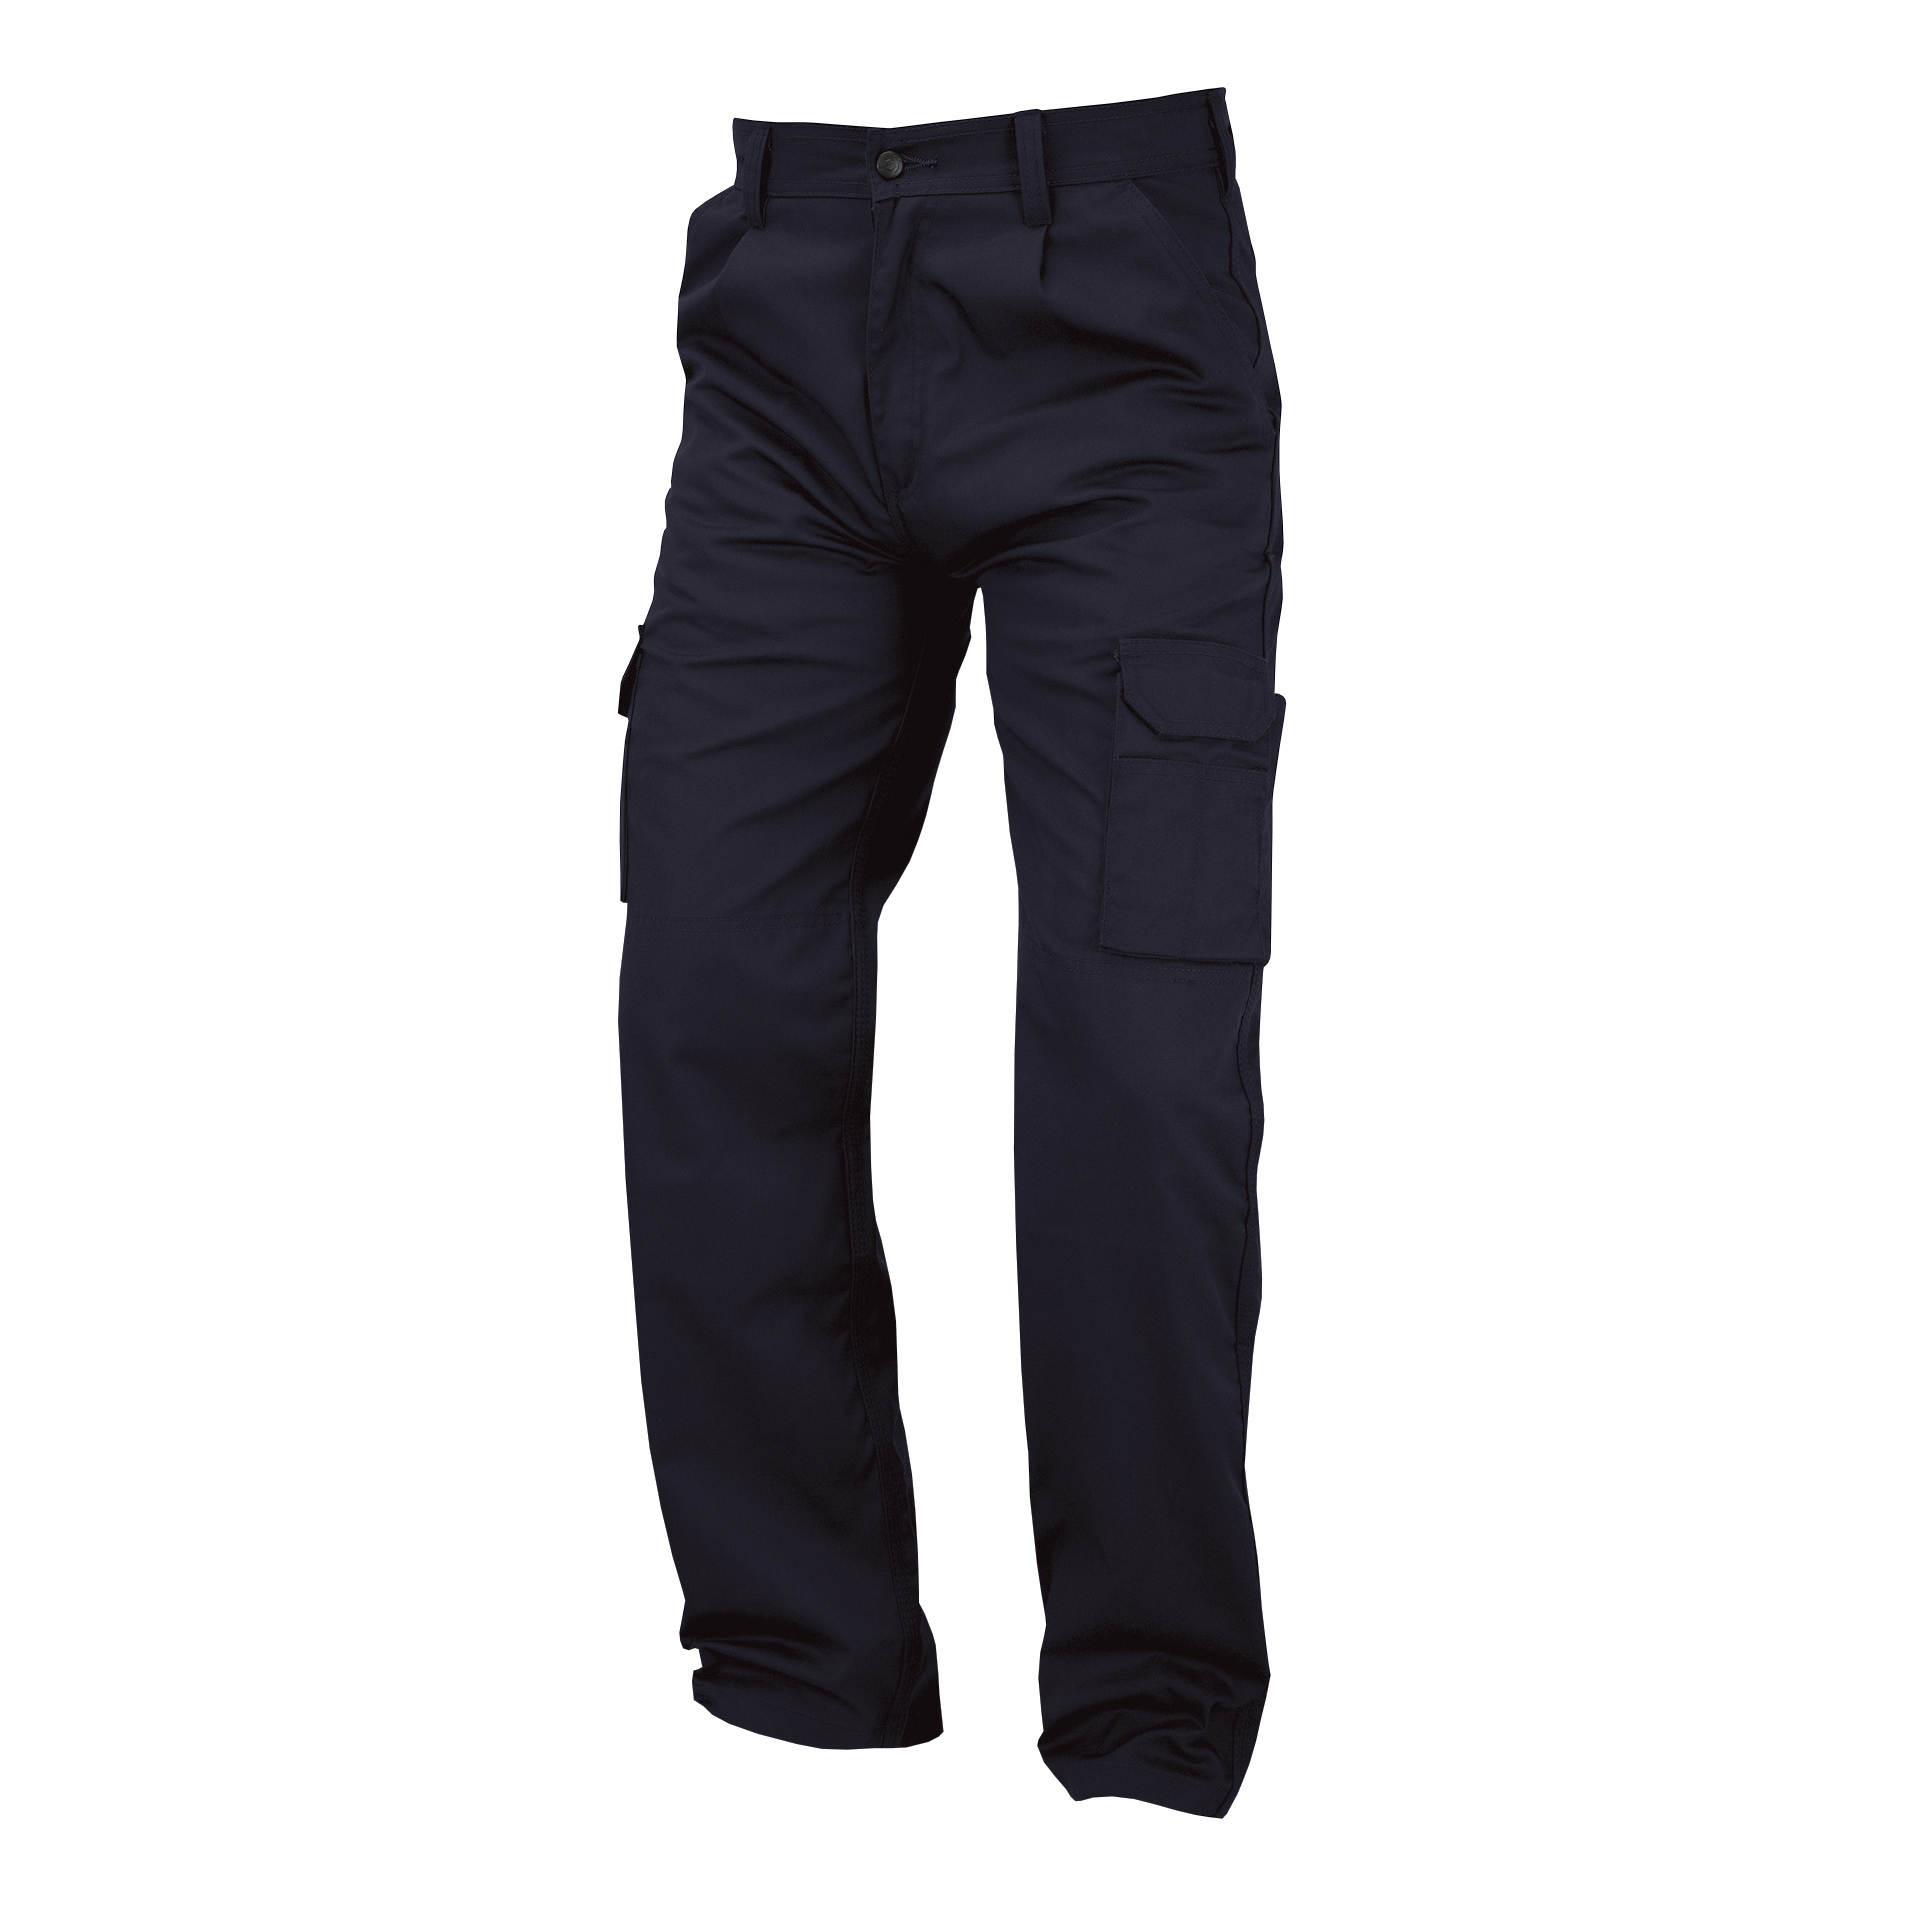 Combat Trousers Multifunctional 42in Tall Navy Blue